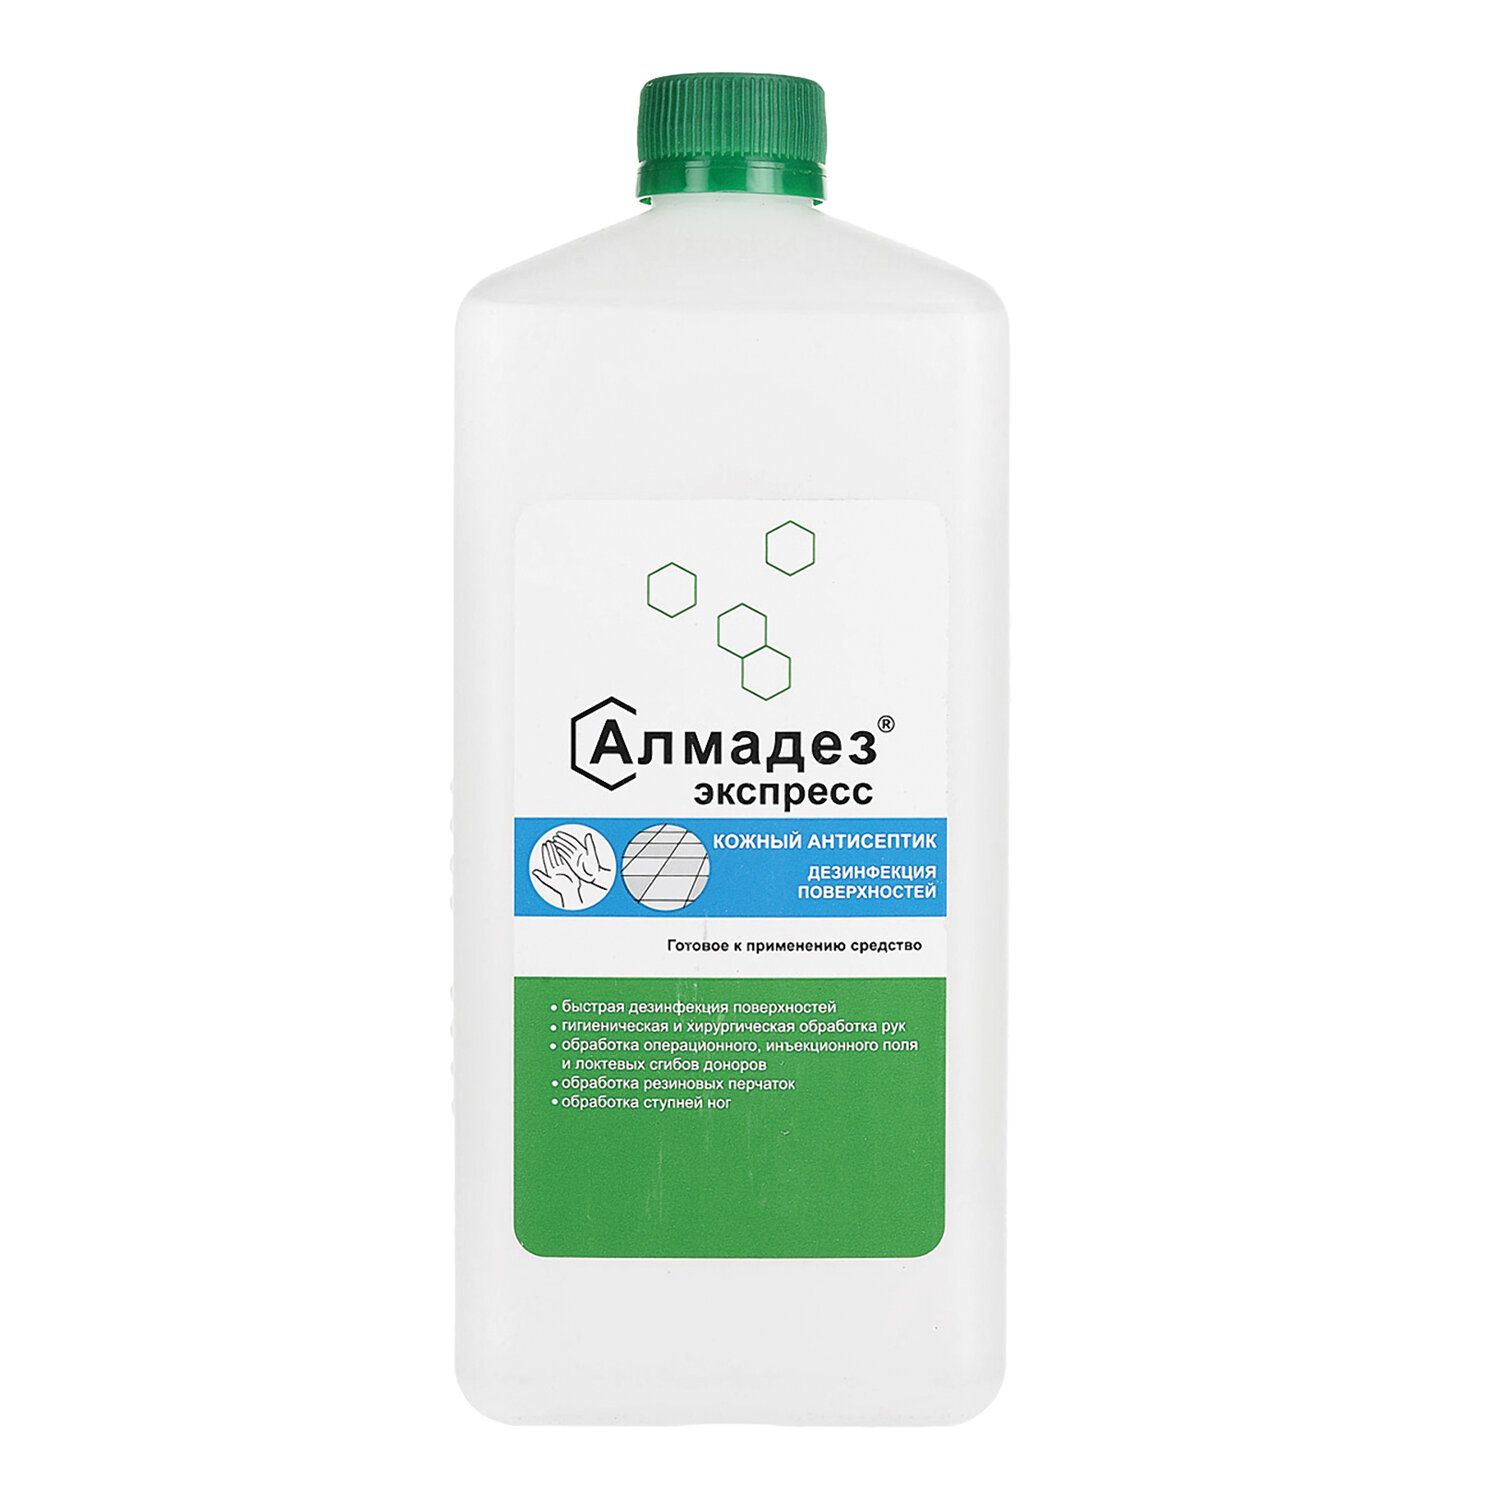 ALMADEZ / Alcohol-containing skin disinfectant antiseptic (63%) EXPRESS, ready-made solution, 1 l, lid